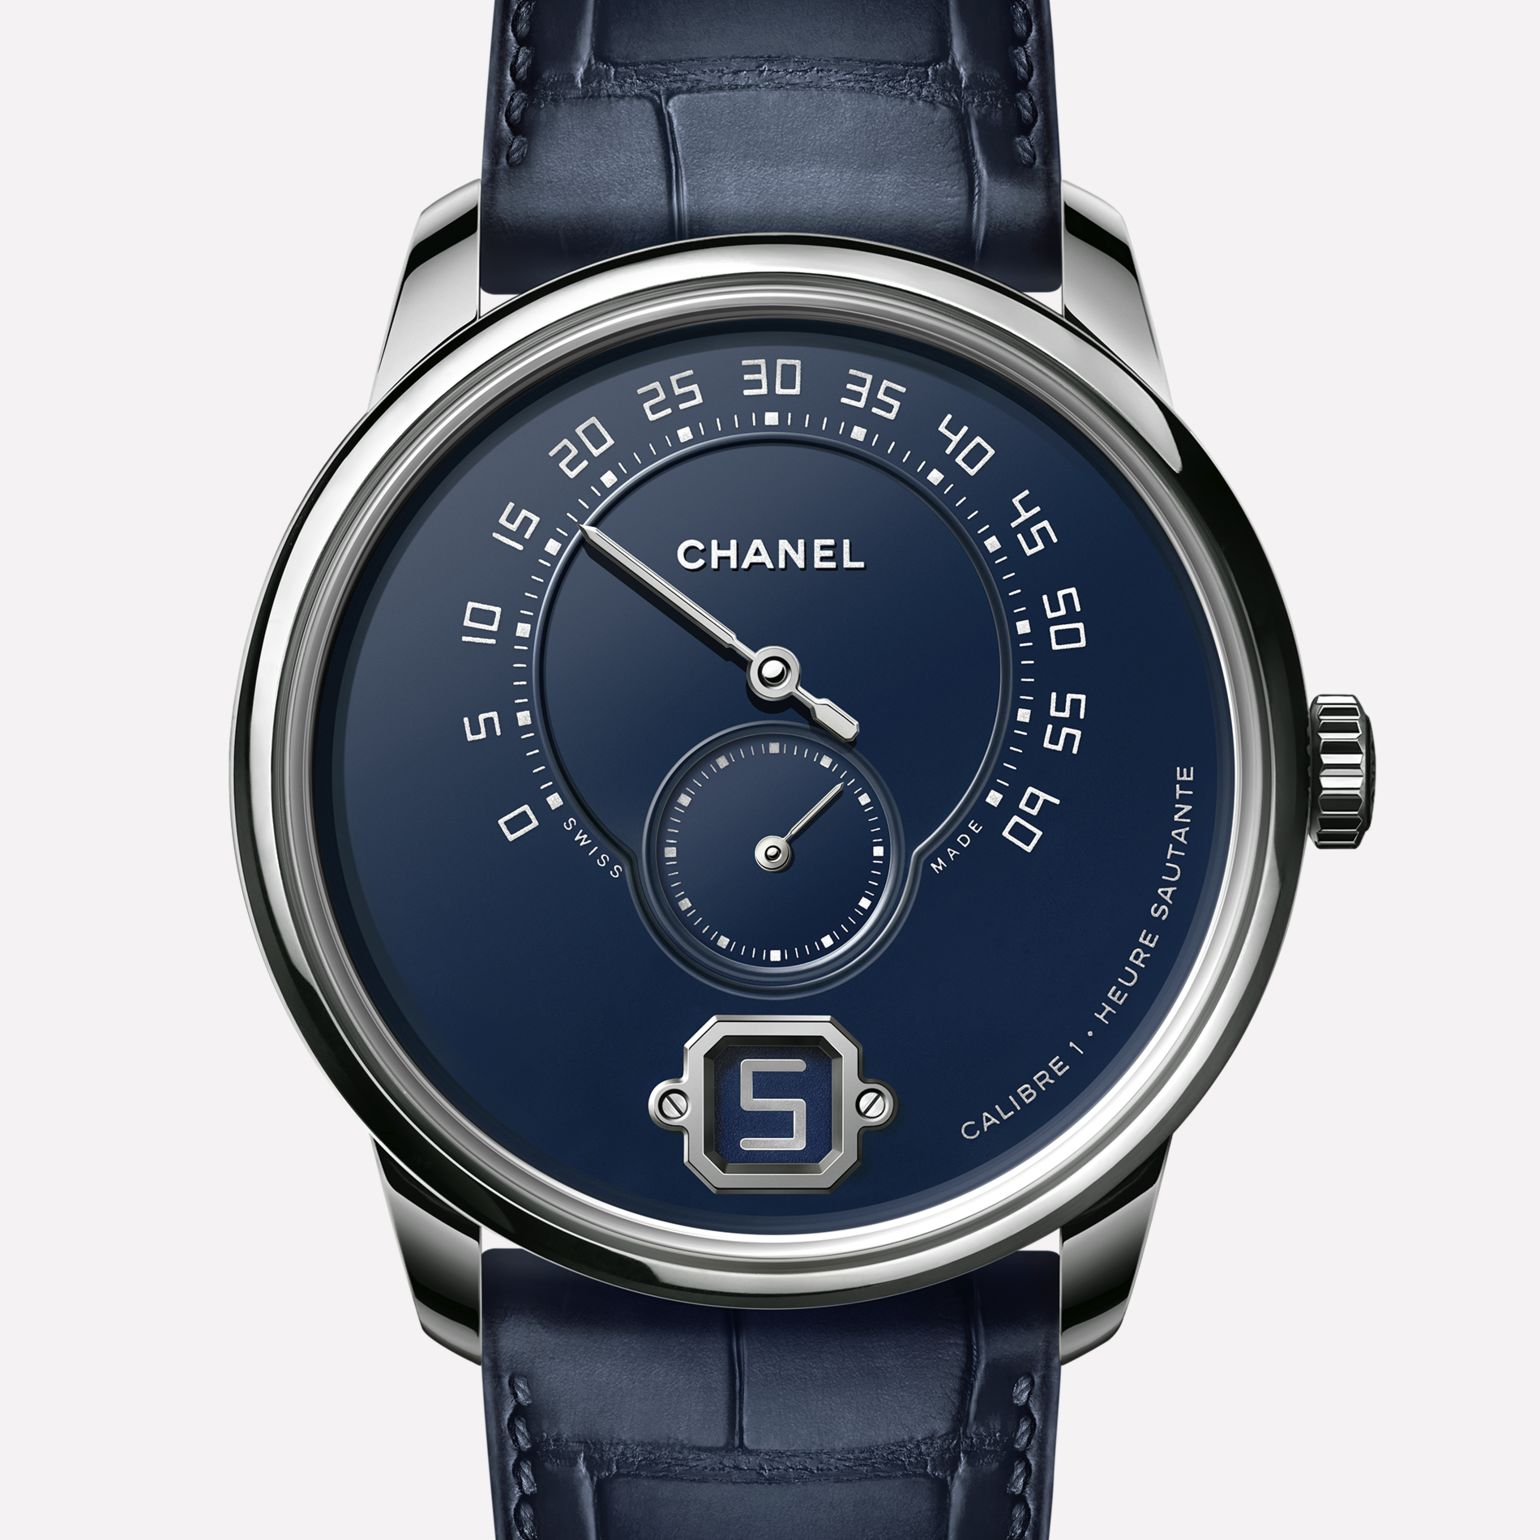 Monsieur Watch Platinum, blue « Grand Feu » enamel dial with jumping hour, 240° retrograde minute and small second counter